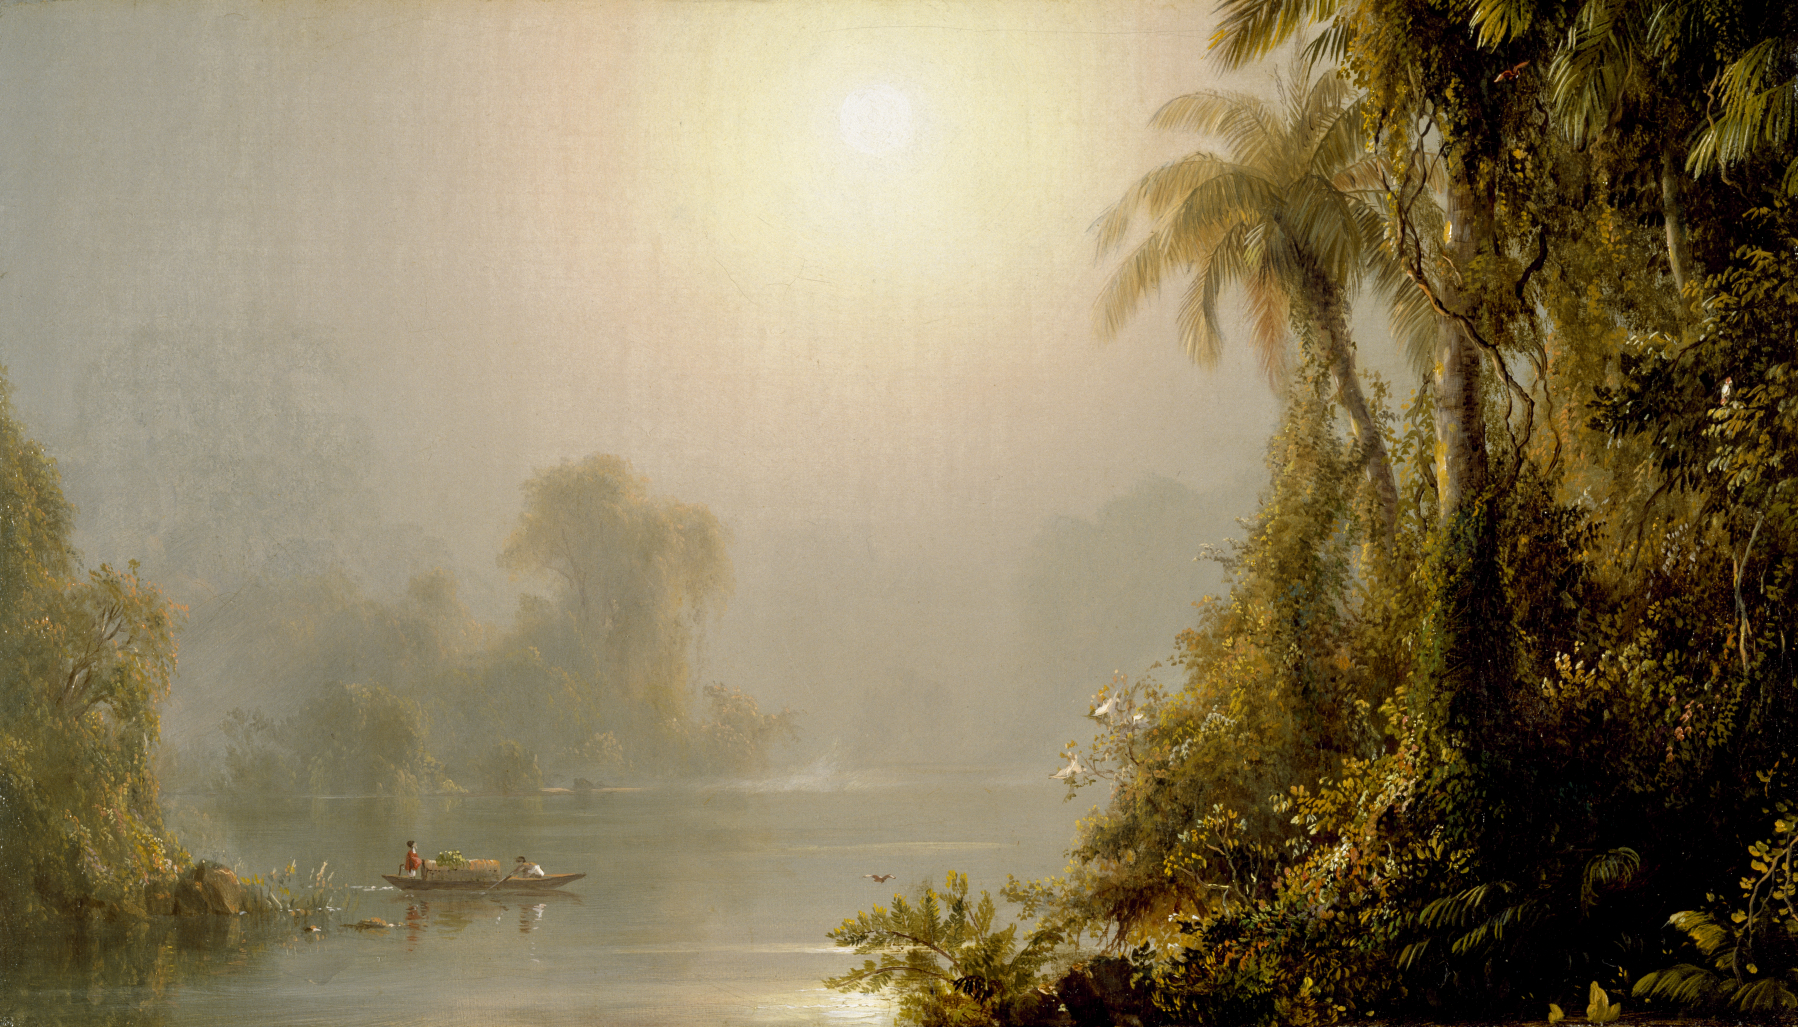 Frederic Church,  Morning in the Tropics , c.1858, The Walters Art Museum, Baltimore.